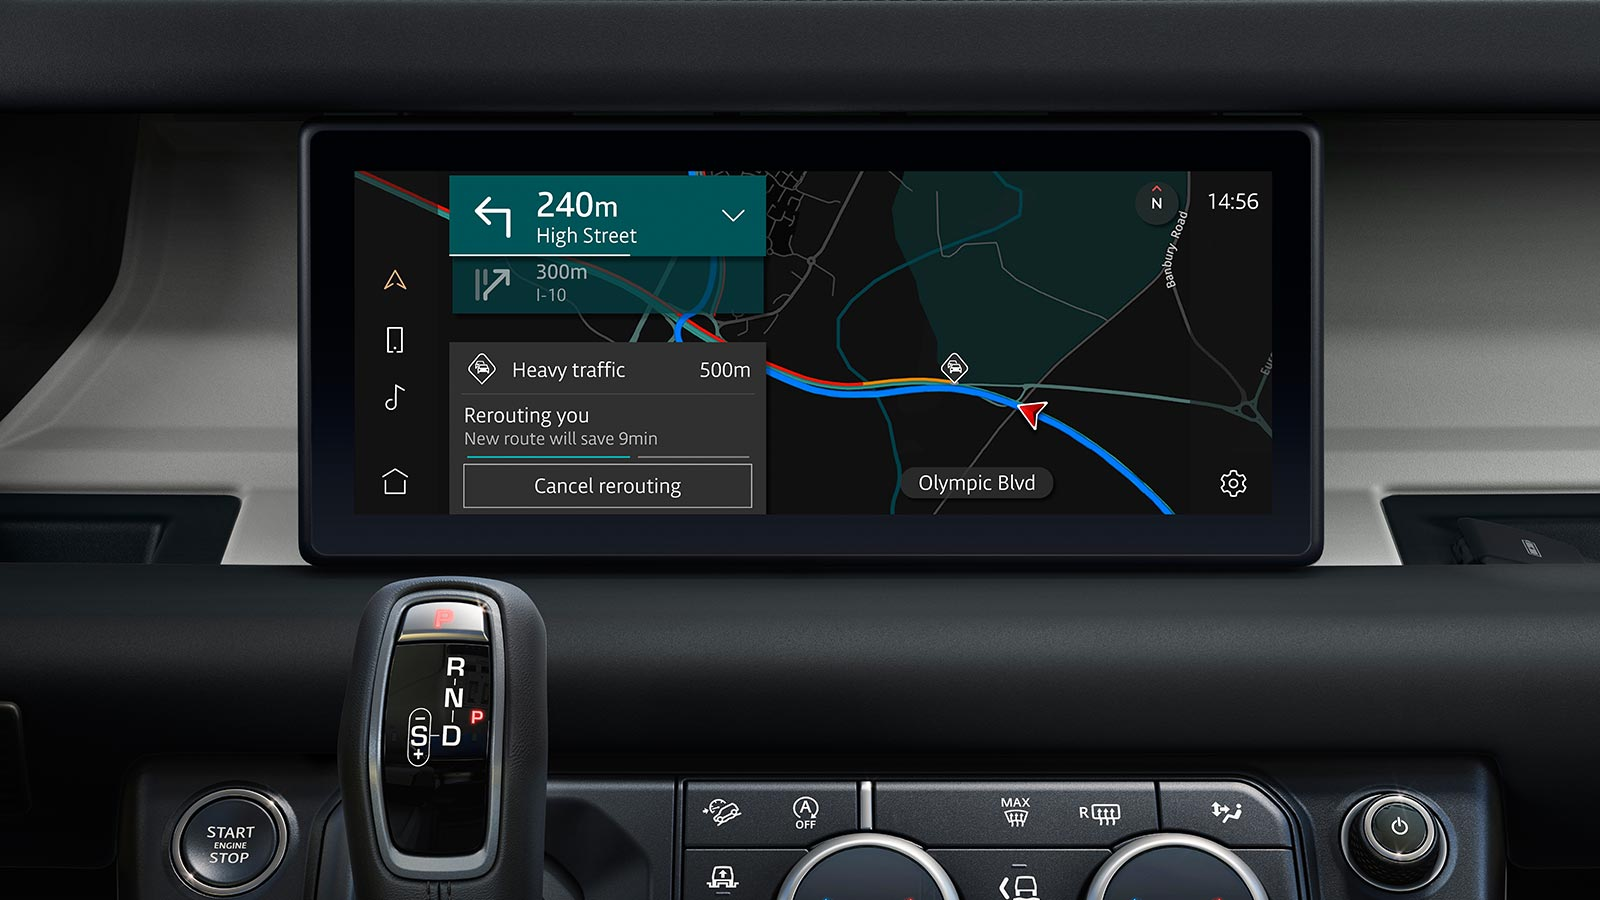 Connected Navigation Pro